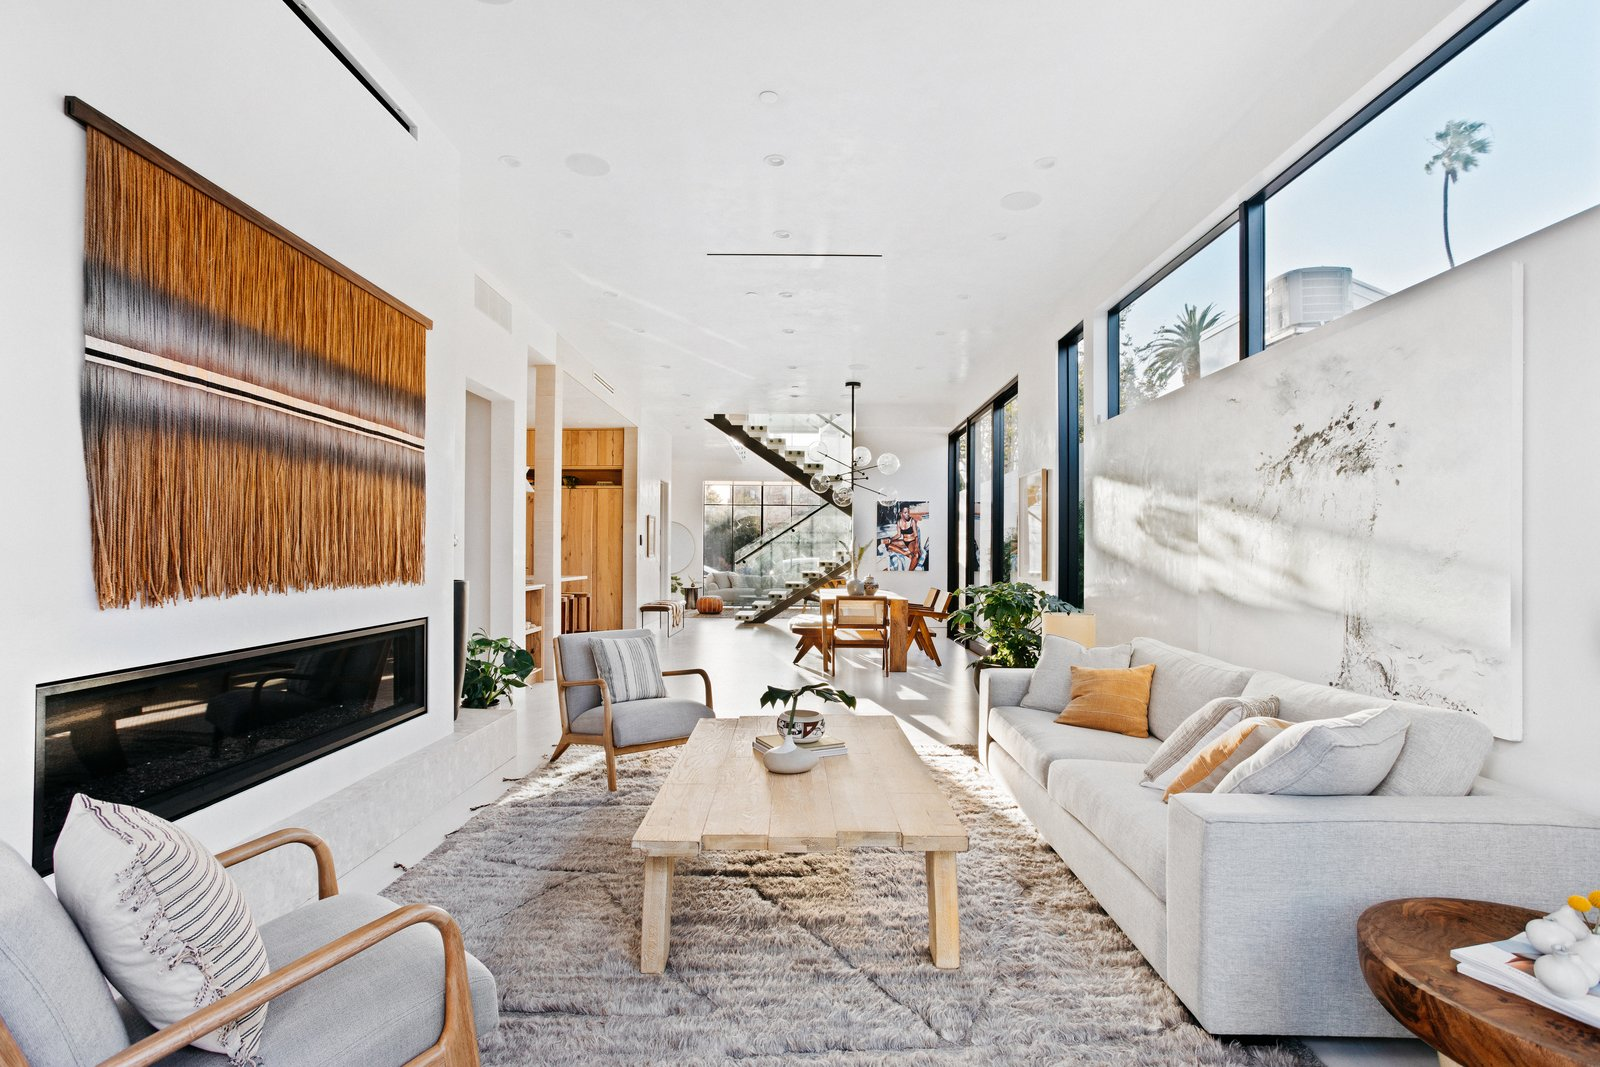 Living Room, Recessed Lighting, Coffee Tables, Chair, Porcelain Tile Floor, Sofa, and Gas Burning Fireplace The open floor plan which blends living and dining spaces makes the home ideal for family or friendly gatherings.   Milwood Residence by Mayes Office